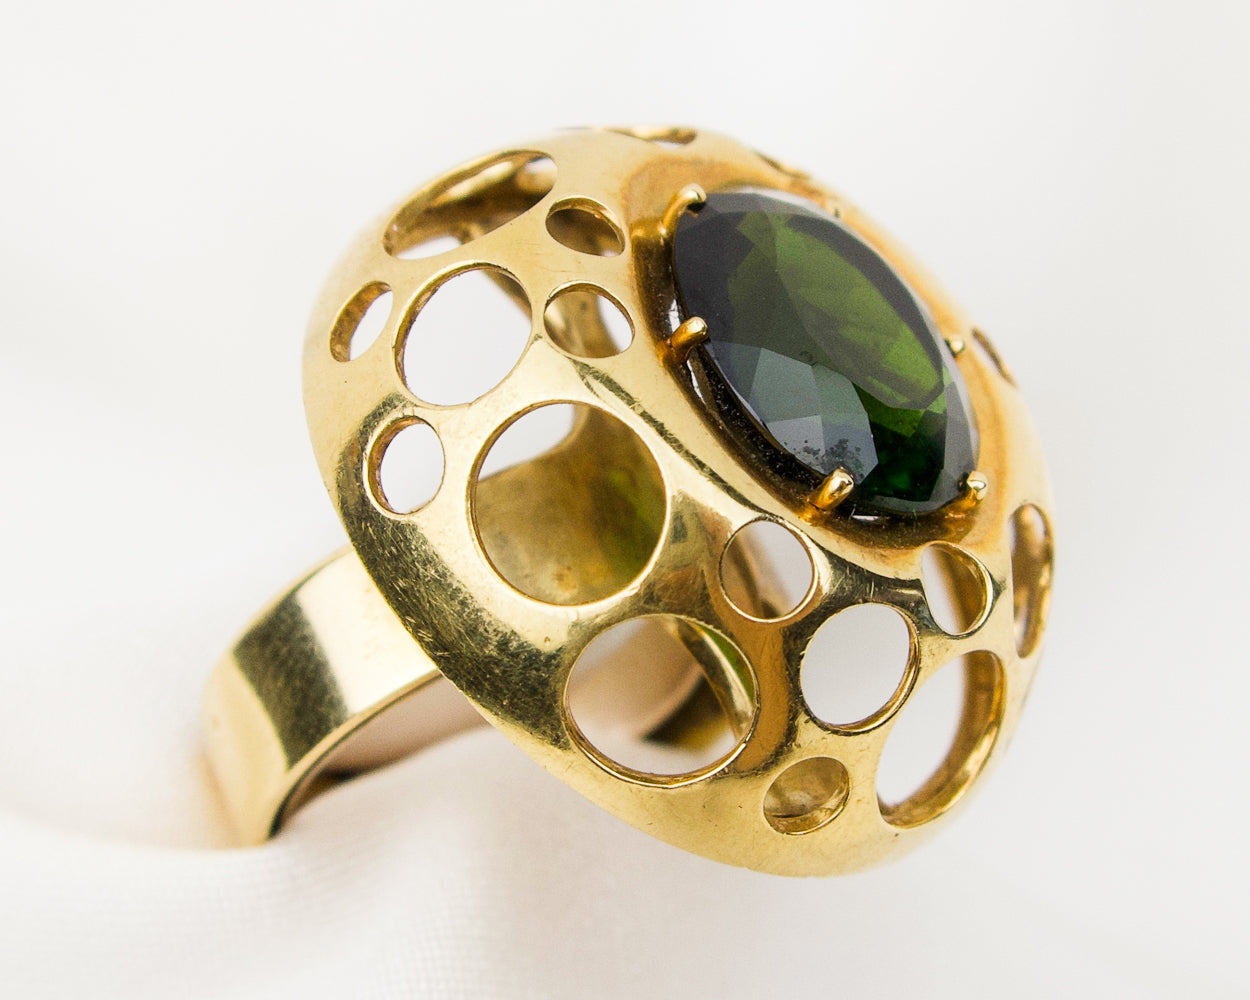 Late-Midcentury Green Tourmaline Cocktail Ring